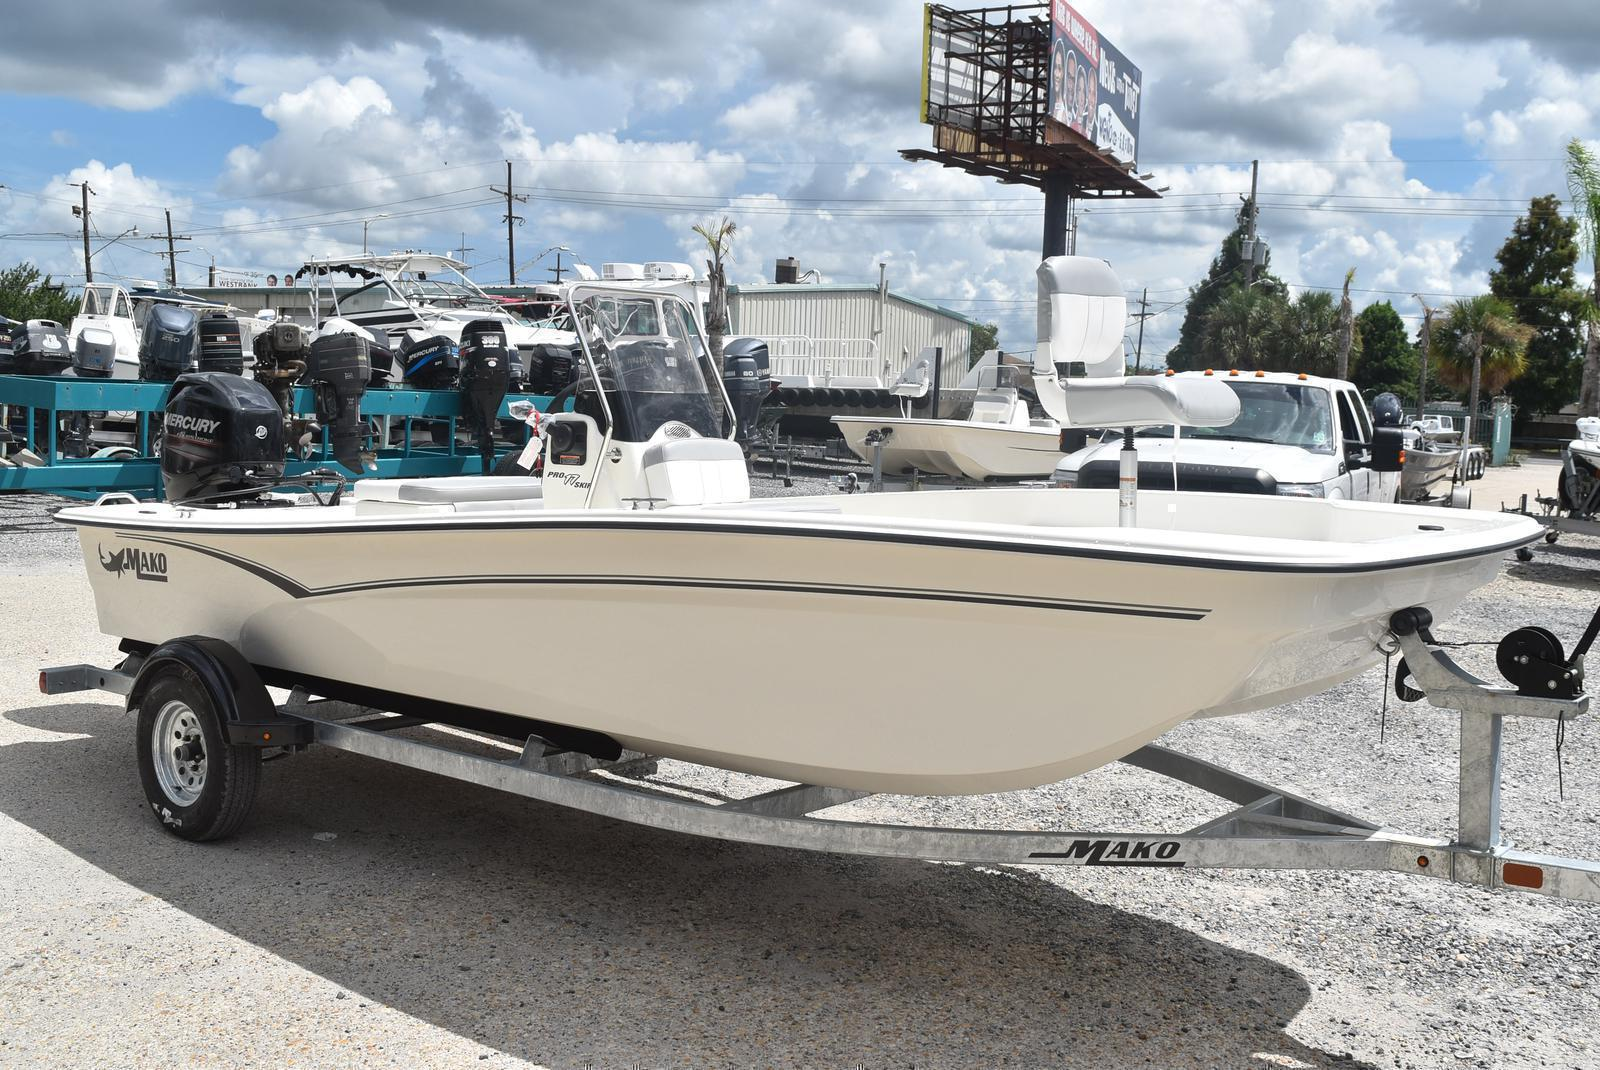 2020 Mako boat for sale, model of the boat is Pro Skiff 17, 75 ELPT & Image # 662 of 702